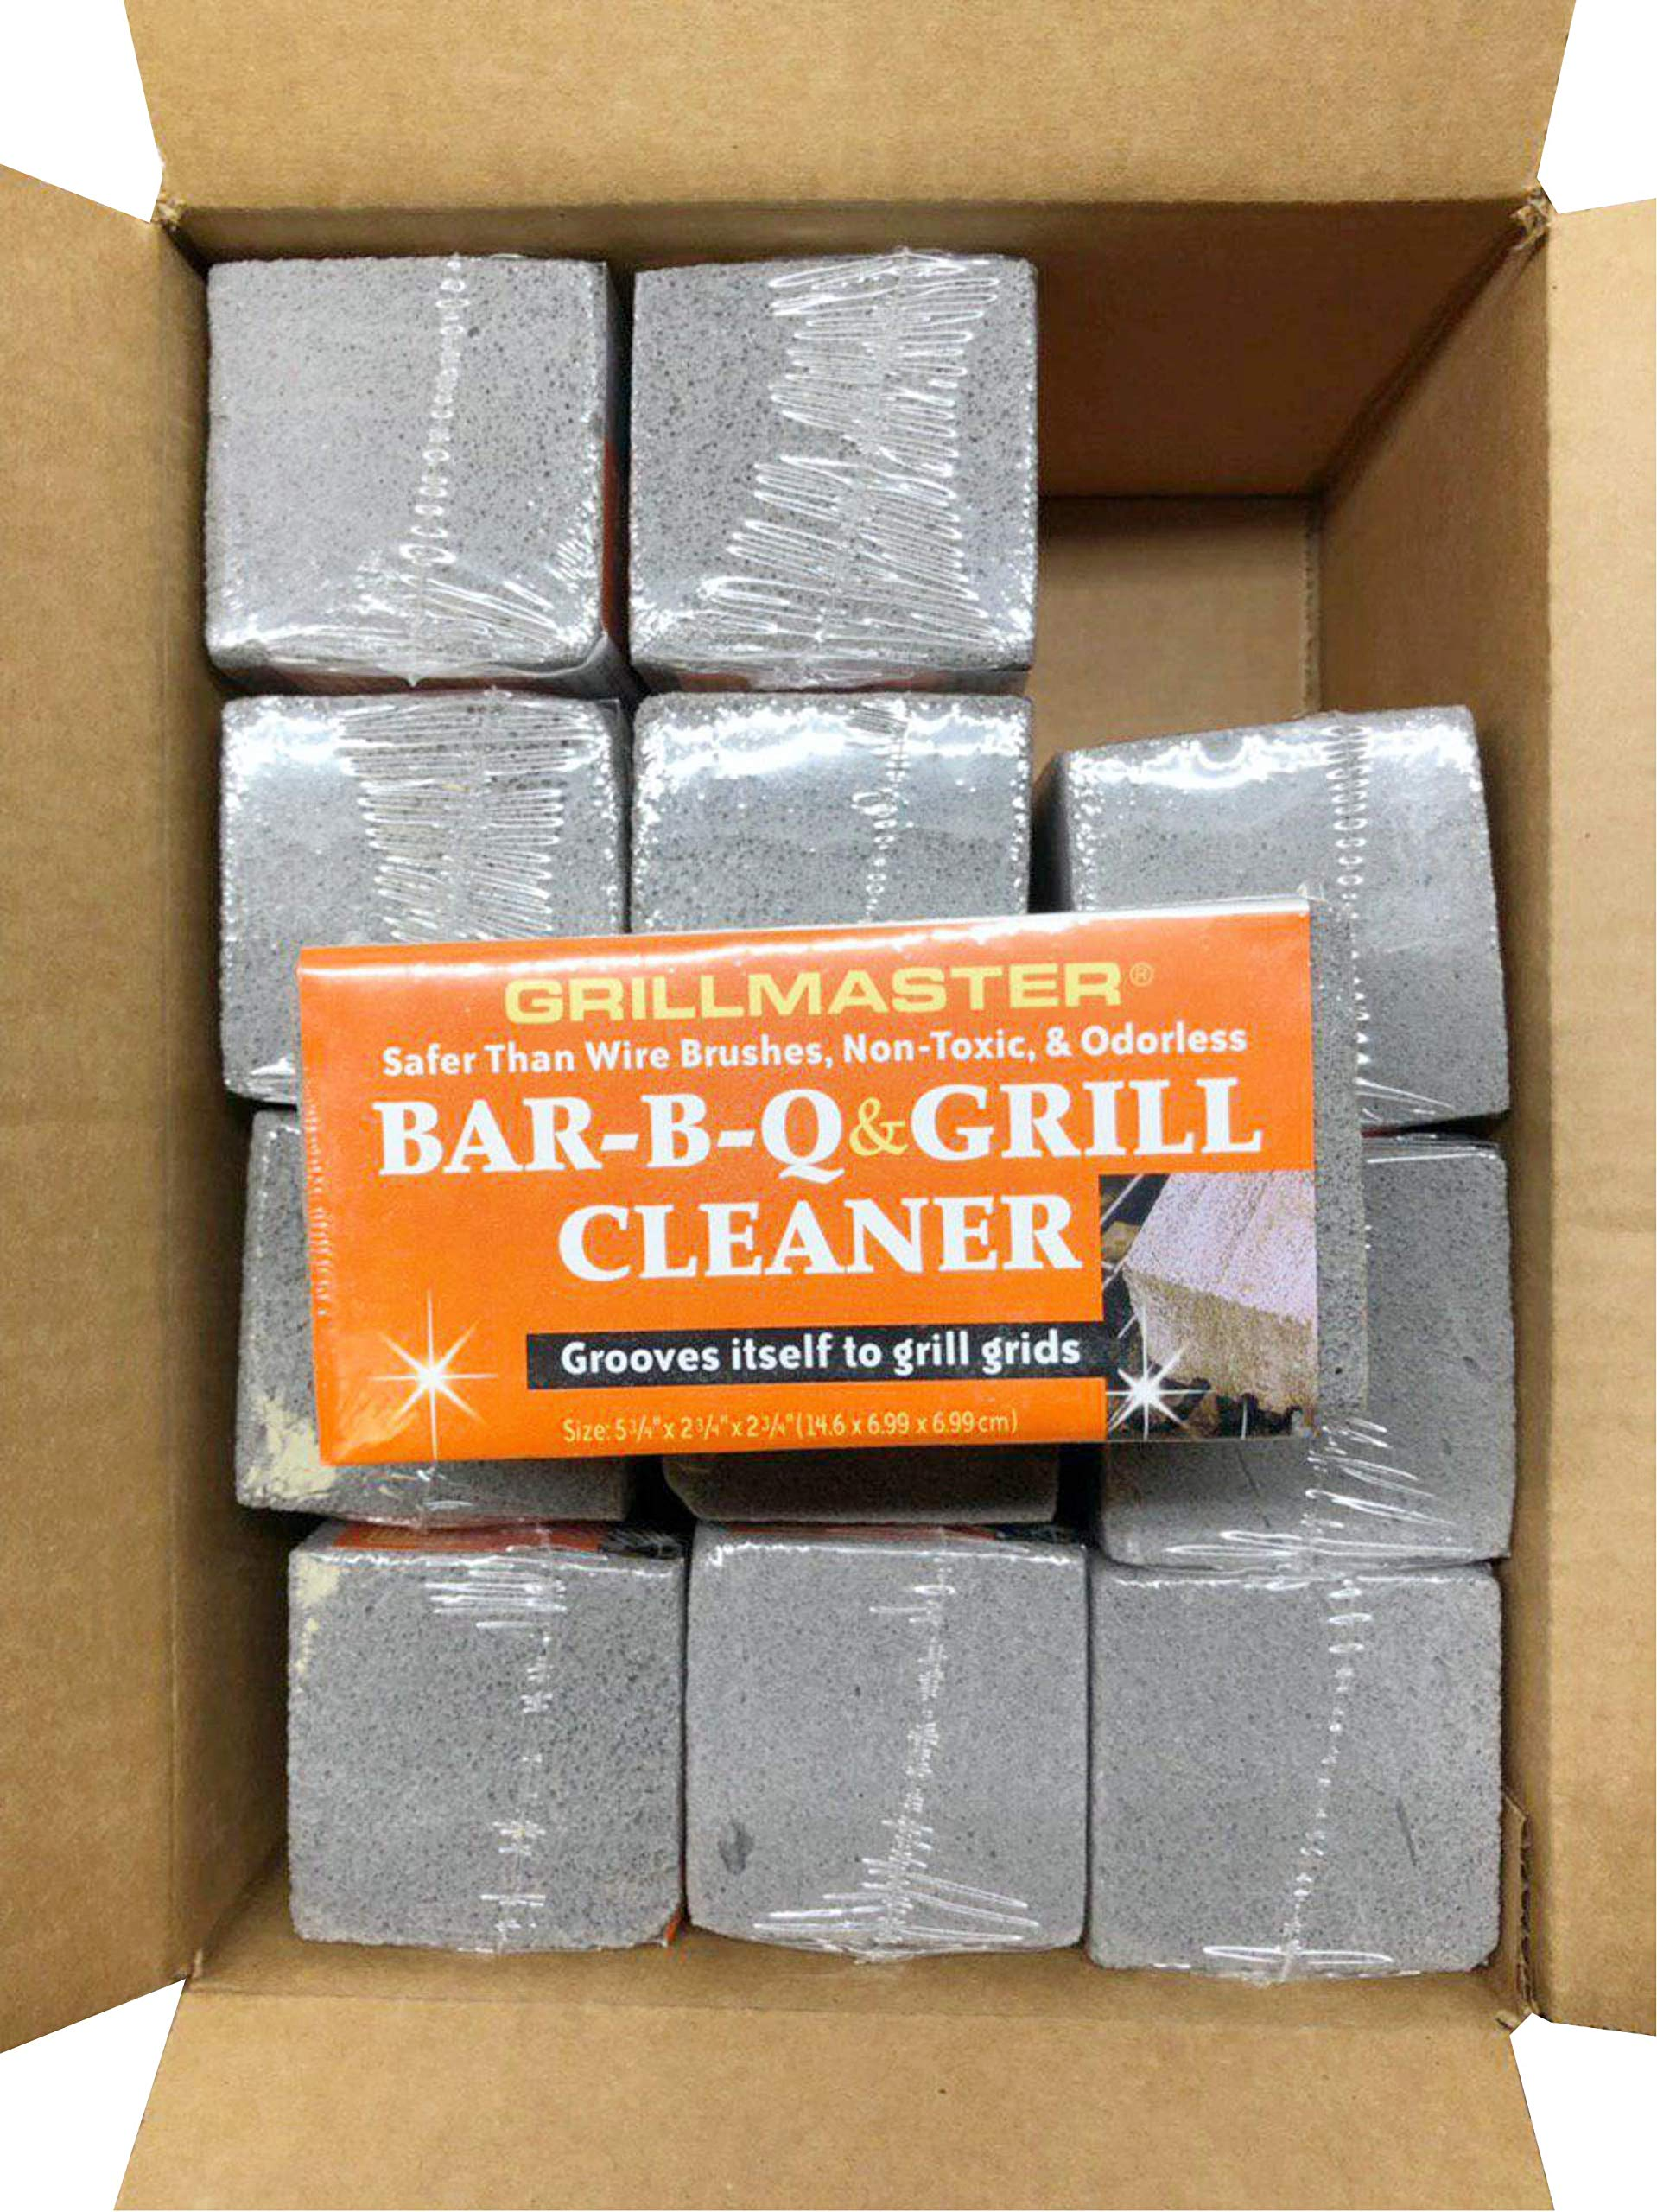 Grillmaster | BQ-12 | BBQ Cleaner Pumice Stone | Case of 12 | GrillBrick for Grill Cleaning | Medium Size | 5.75x2.75x2.75 inches (12) by GRILLMASTER (Image #2)